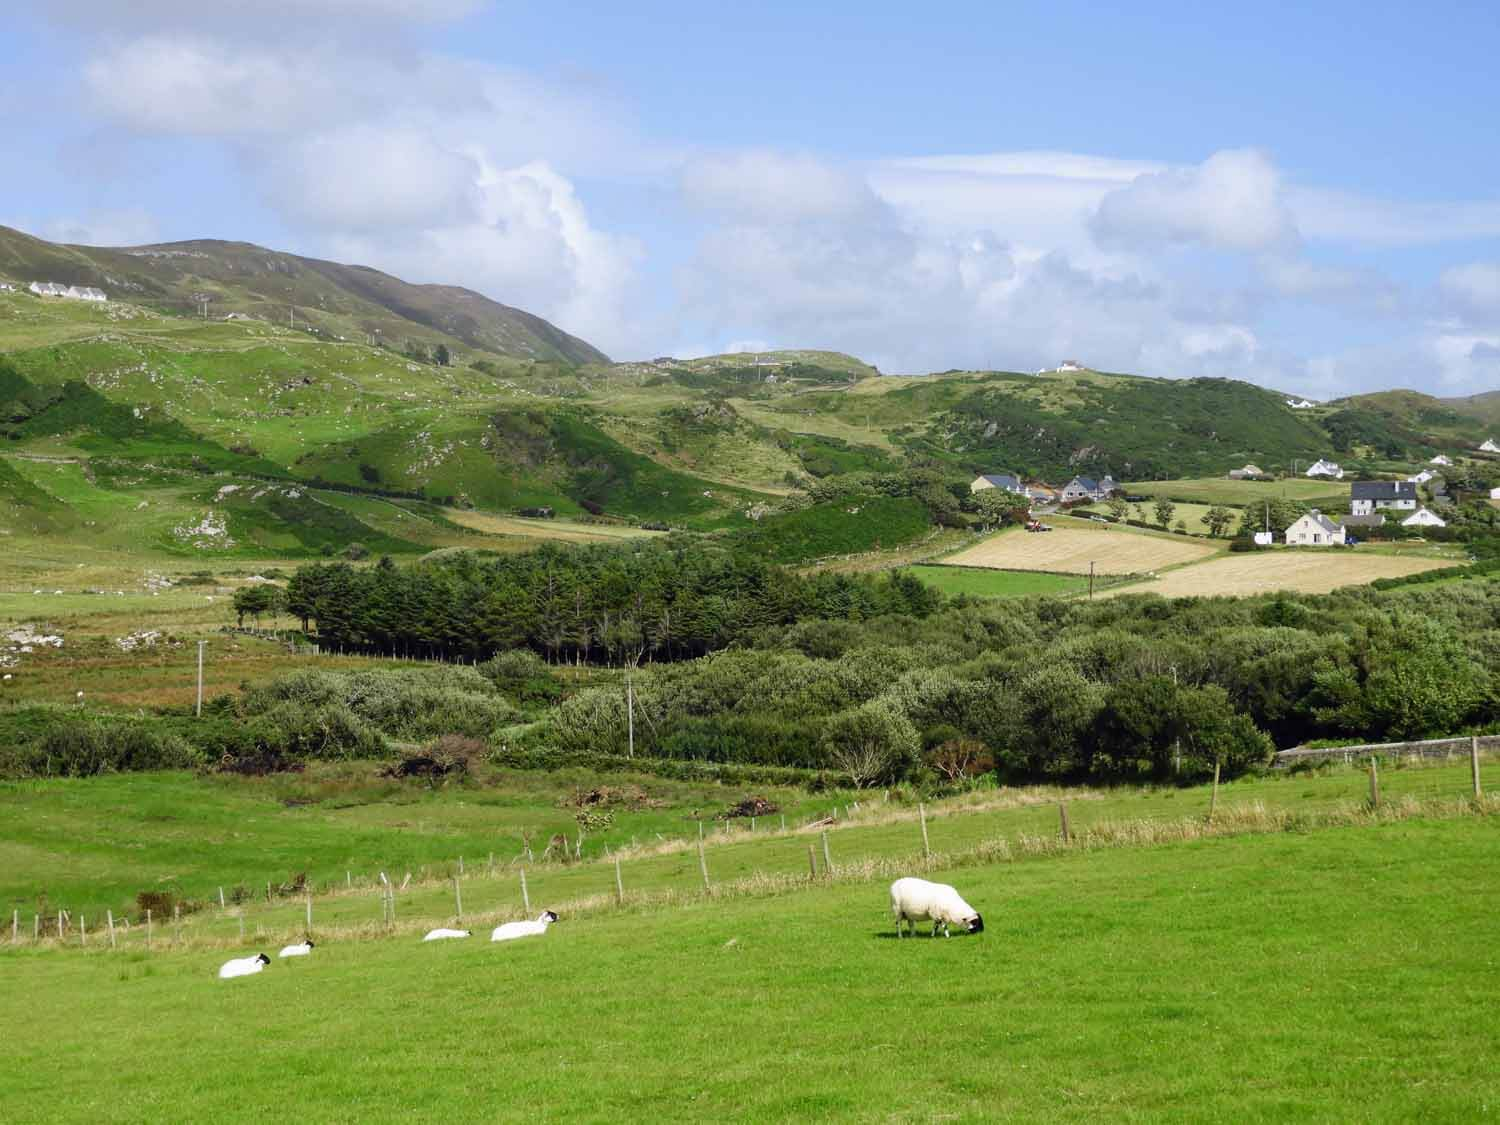 ireland-donegal-glencolumbkille-gleann-cholm-cille-sheep-green-hills.jpg